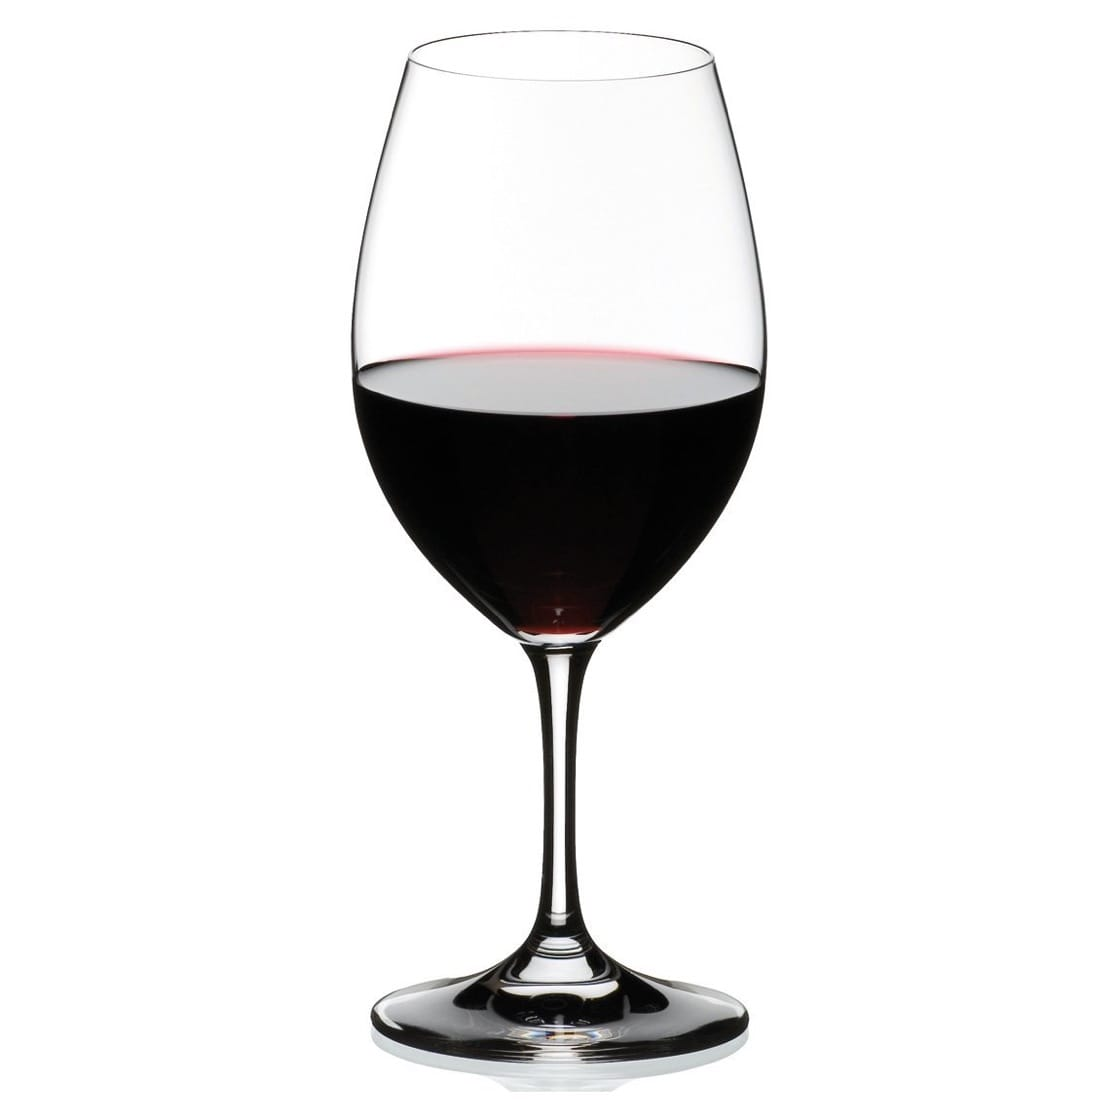 The Only Wine Glass Youll Ever Need, According To Sommeliers